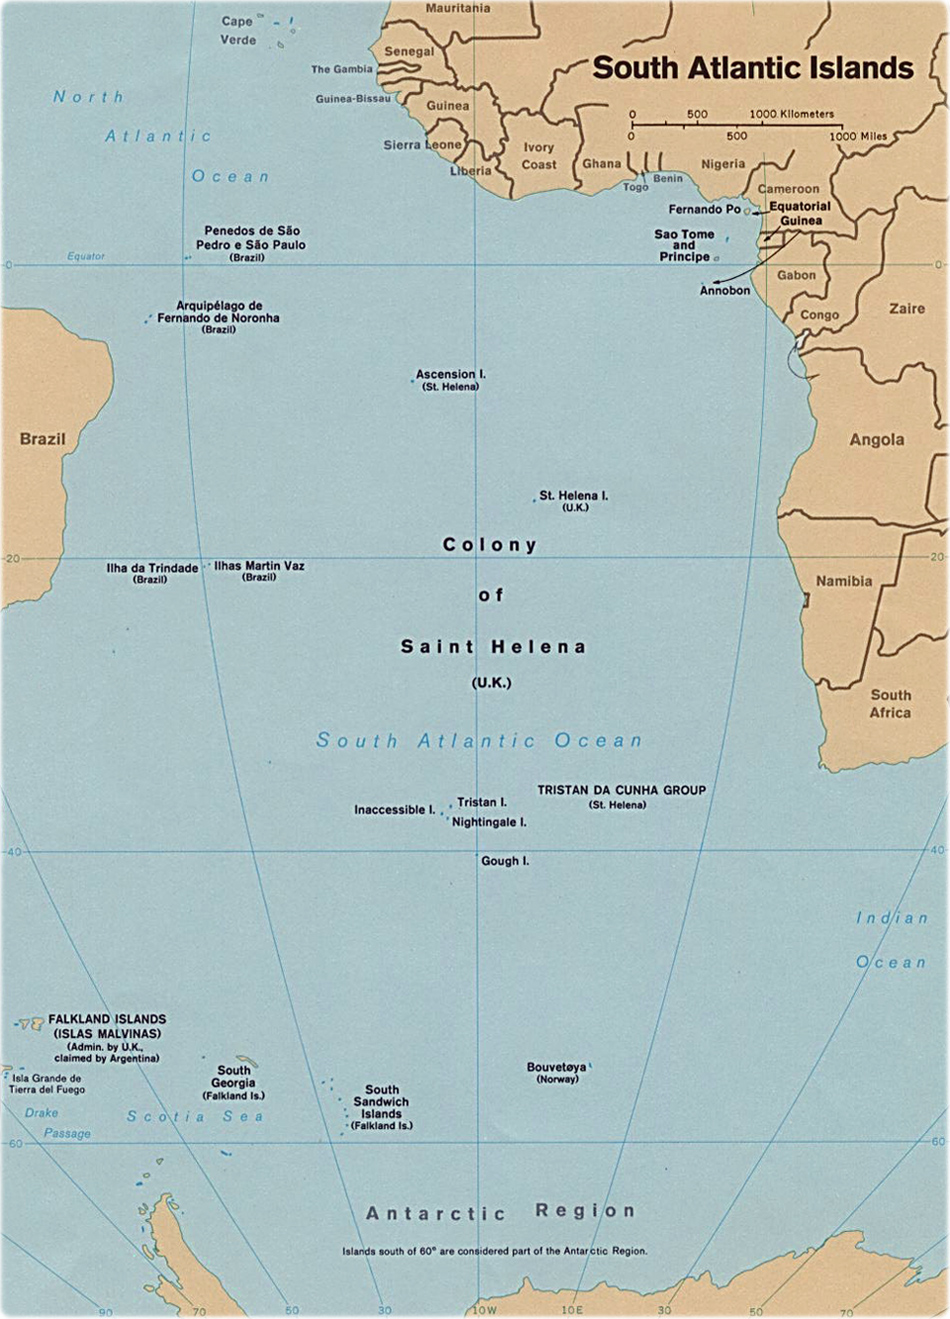 . map of the south atlantic ocean islands